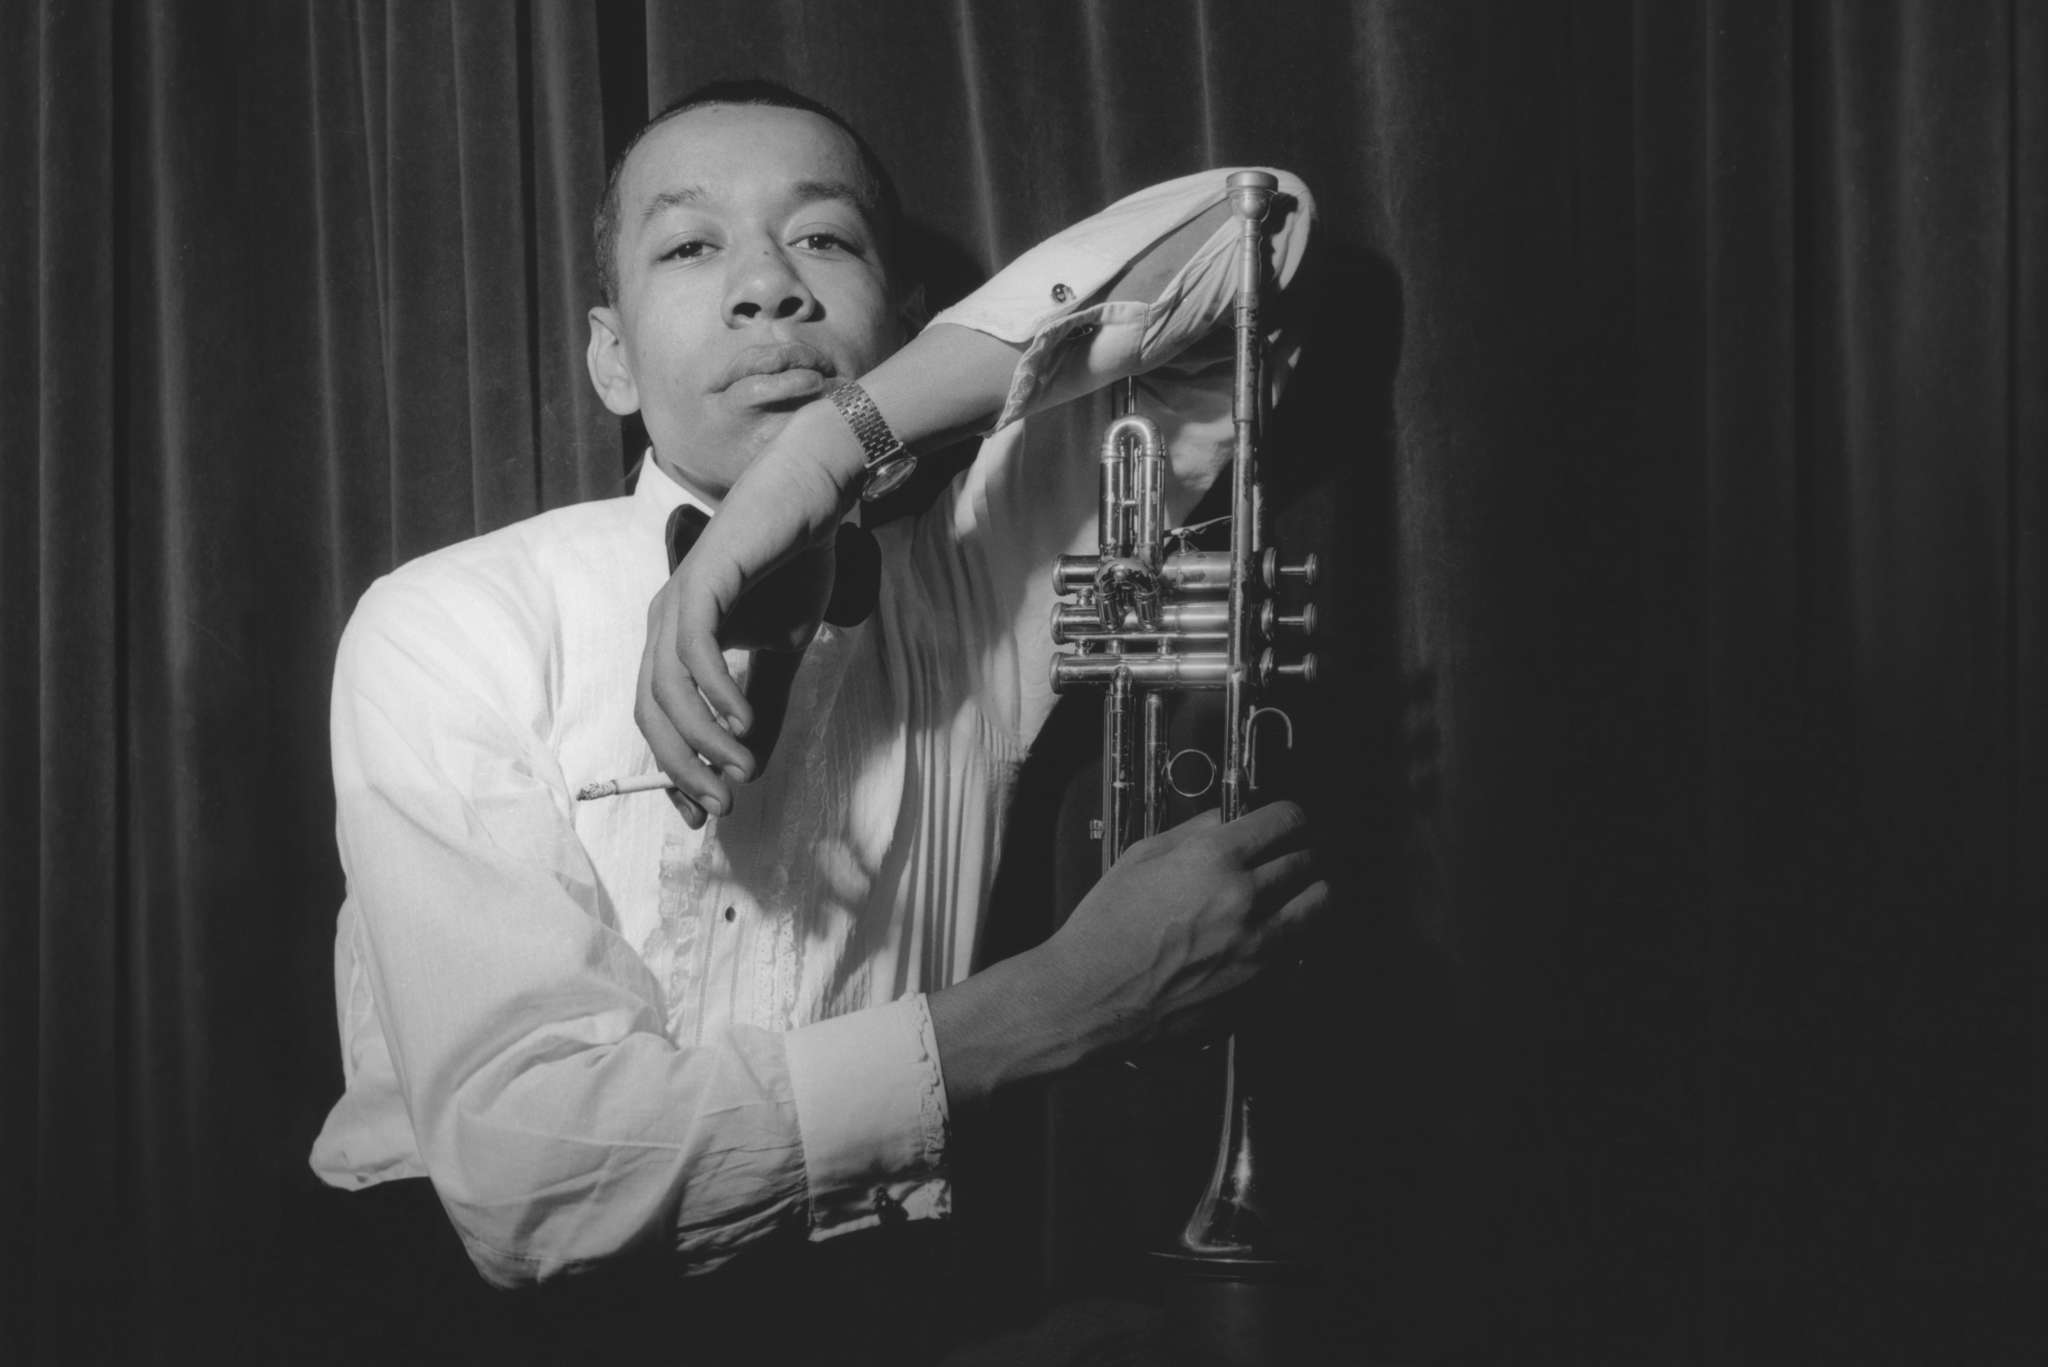 """""""I Called Him Morgan"""": Jazz trumpeter Lee Morgan, in a 1960 portrait, from the documentary directed by Kasper Collin."""